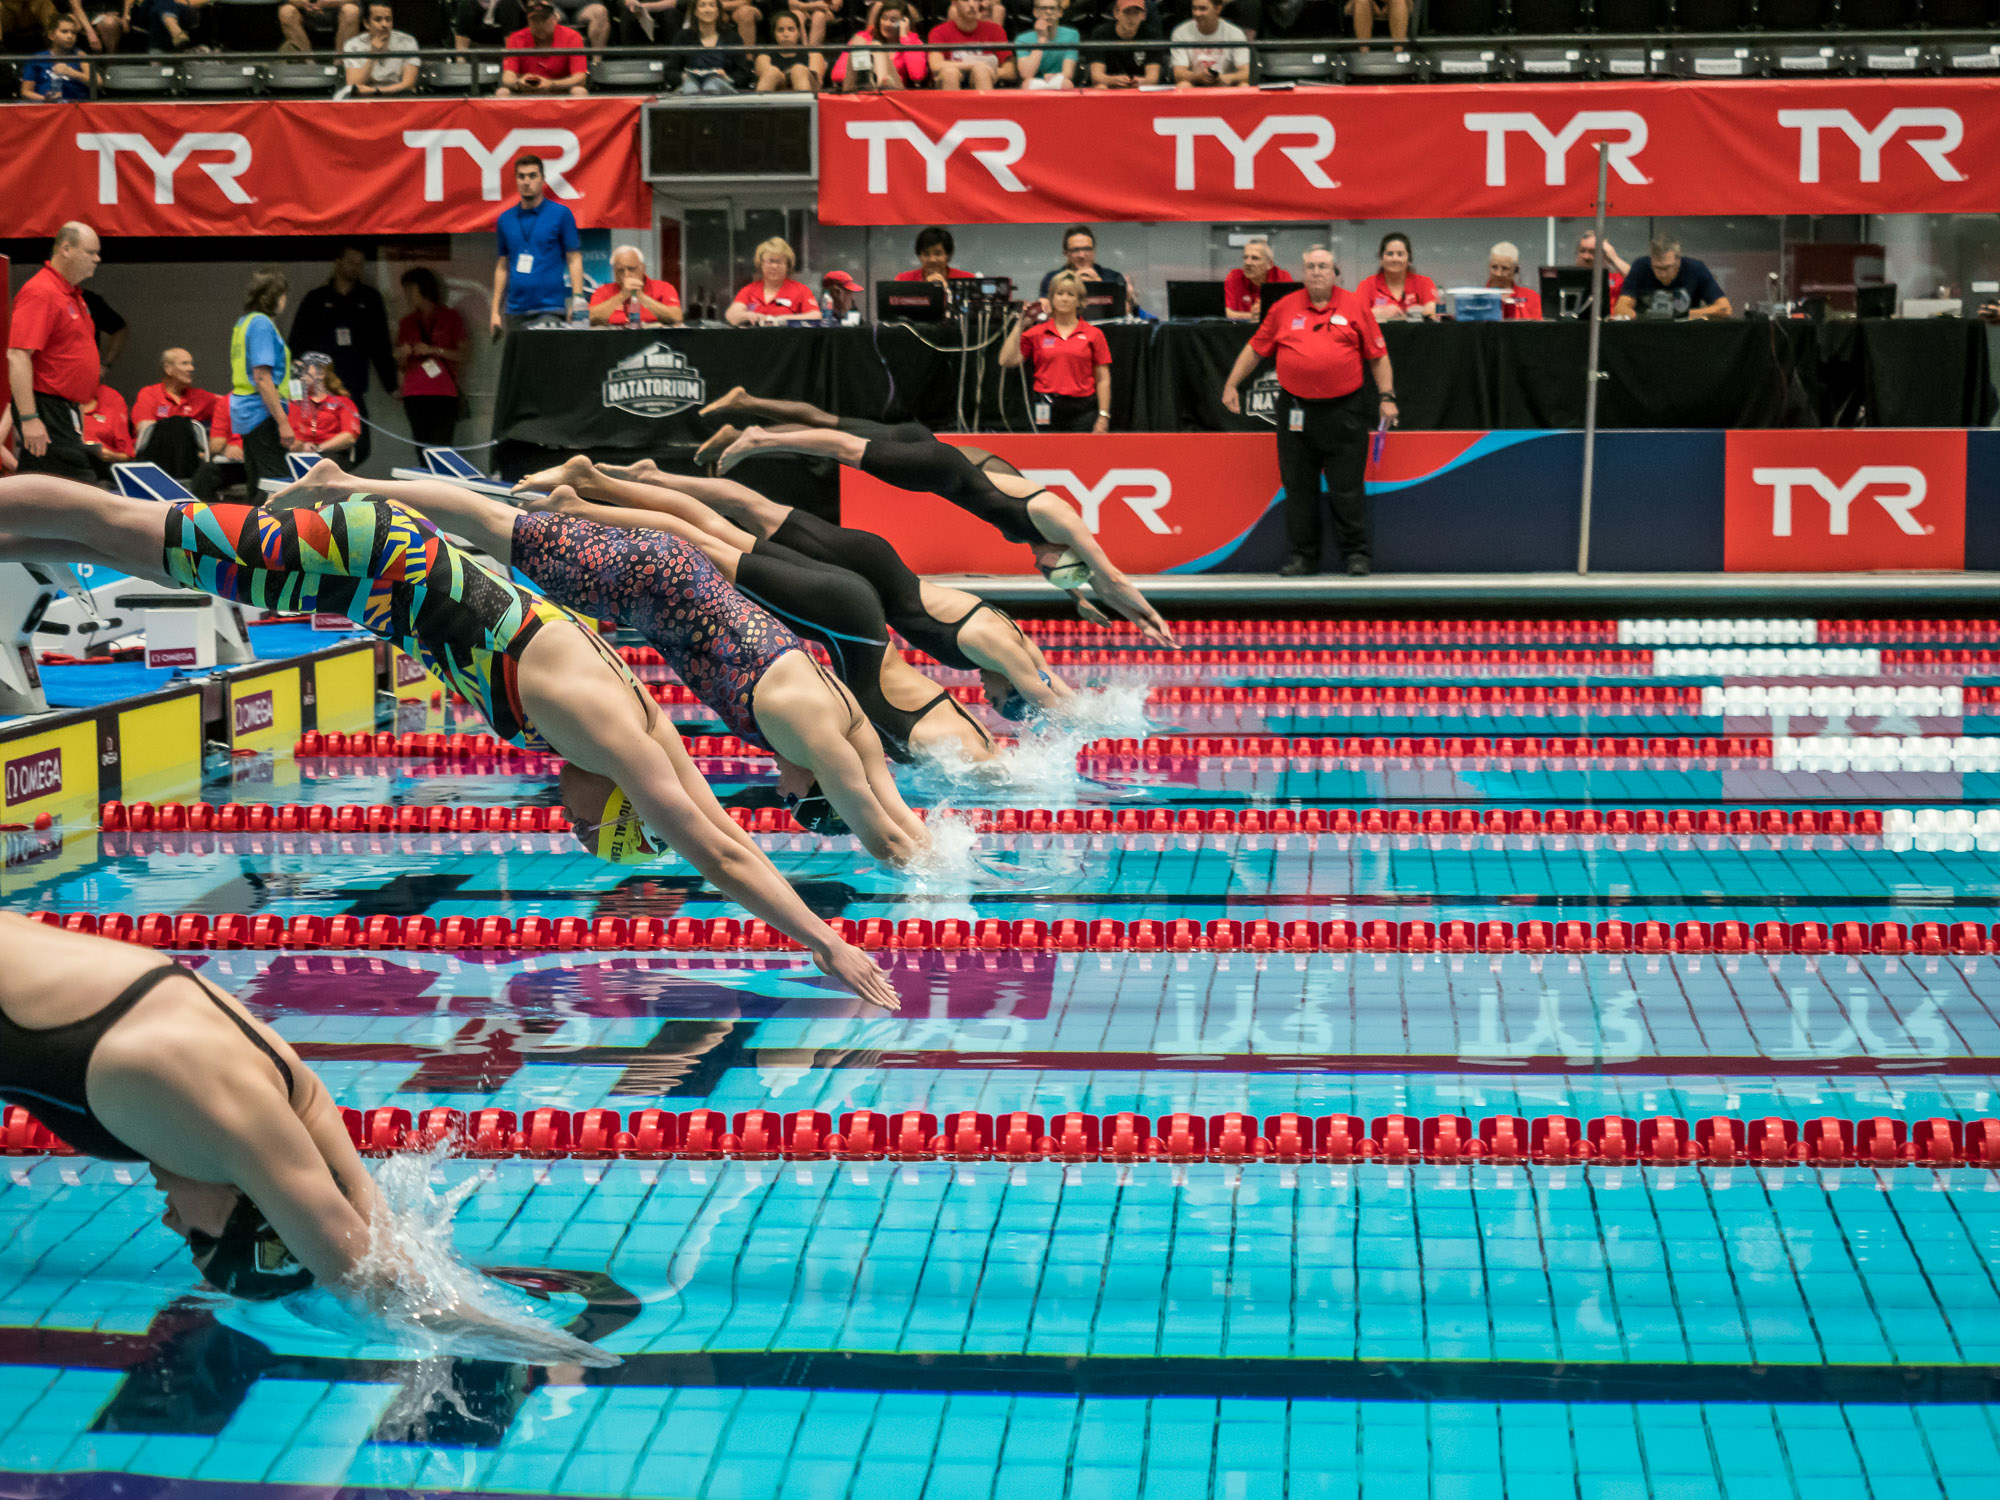 USA Swimming Releases Schedule For 2020 TYR Pro Swim Series